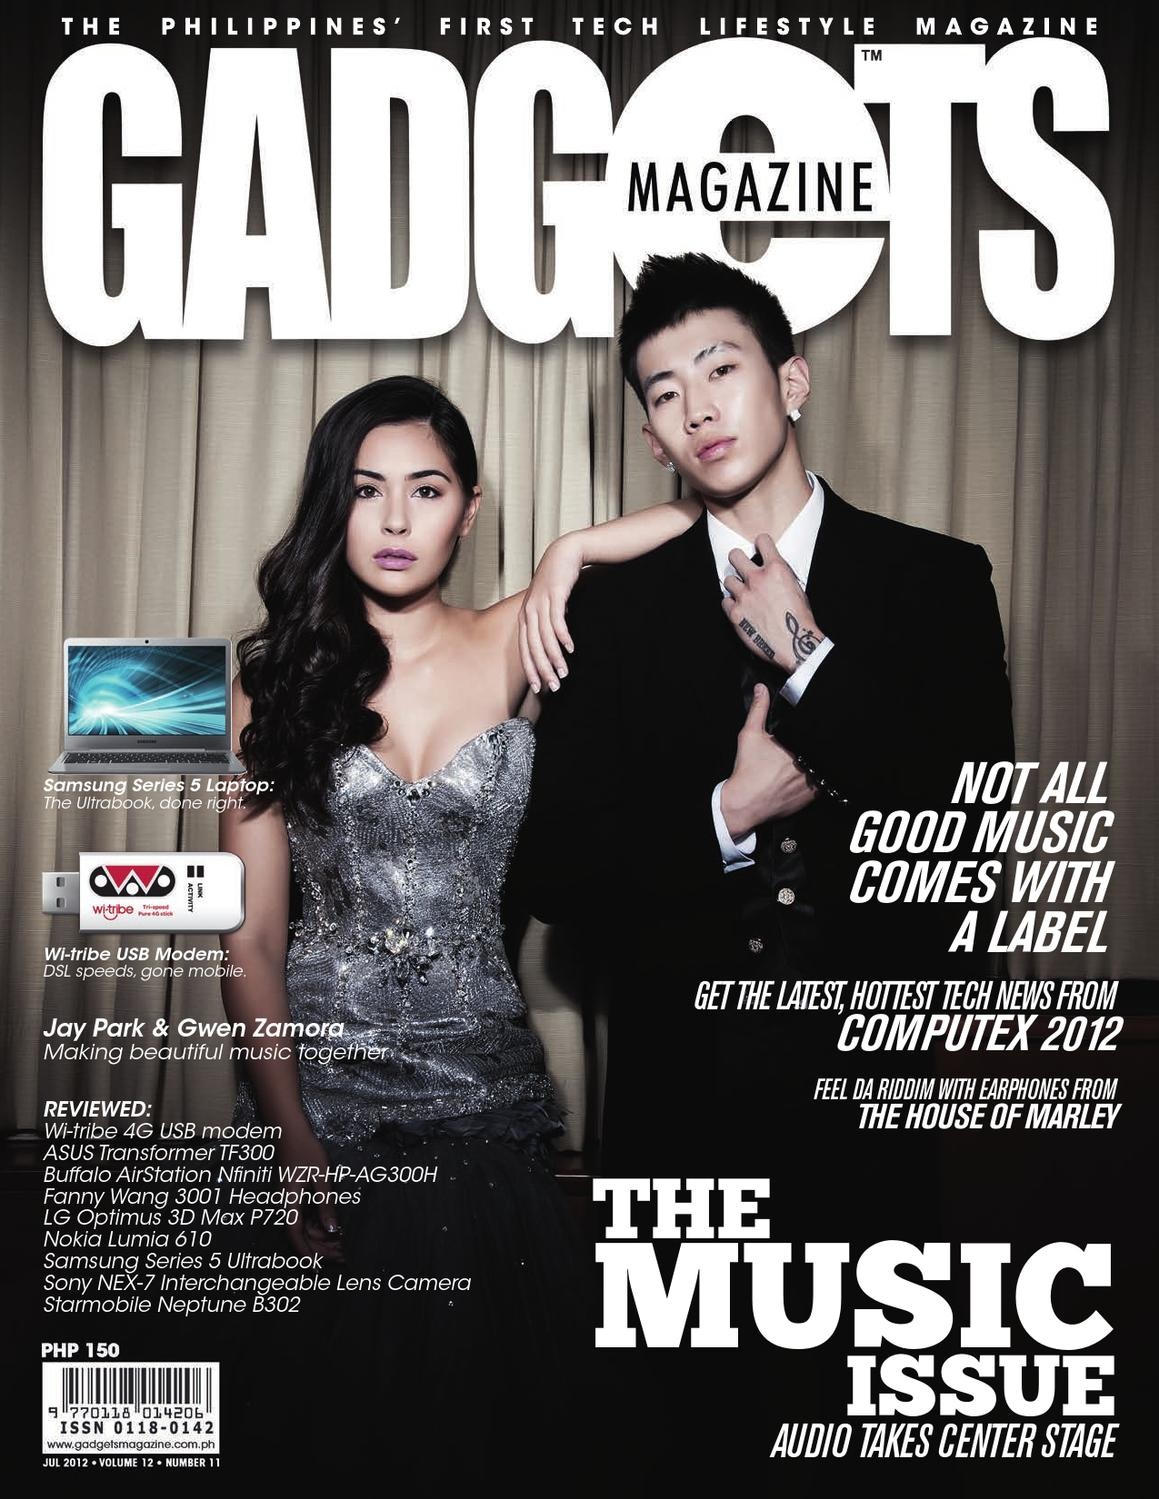 Gadgets Magazine Vol 12 No 11 By Issuu Camera Circuit Board Promotiononline Shopping For Promotional